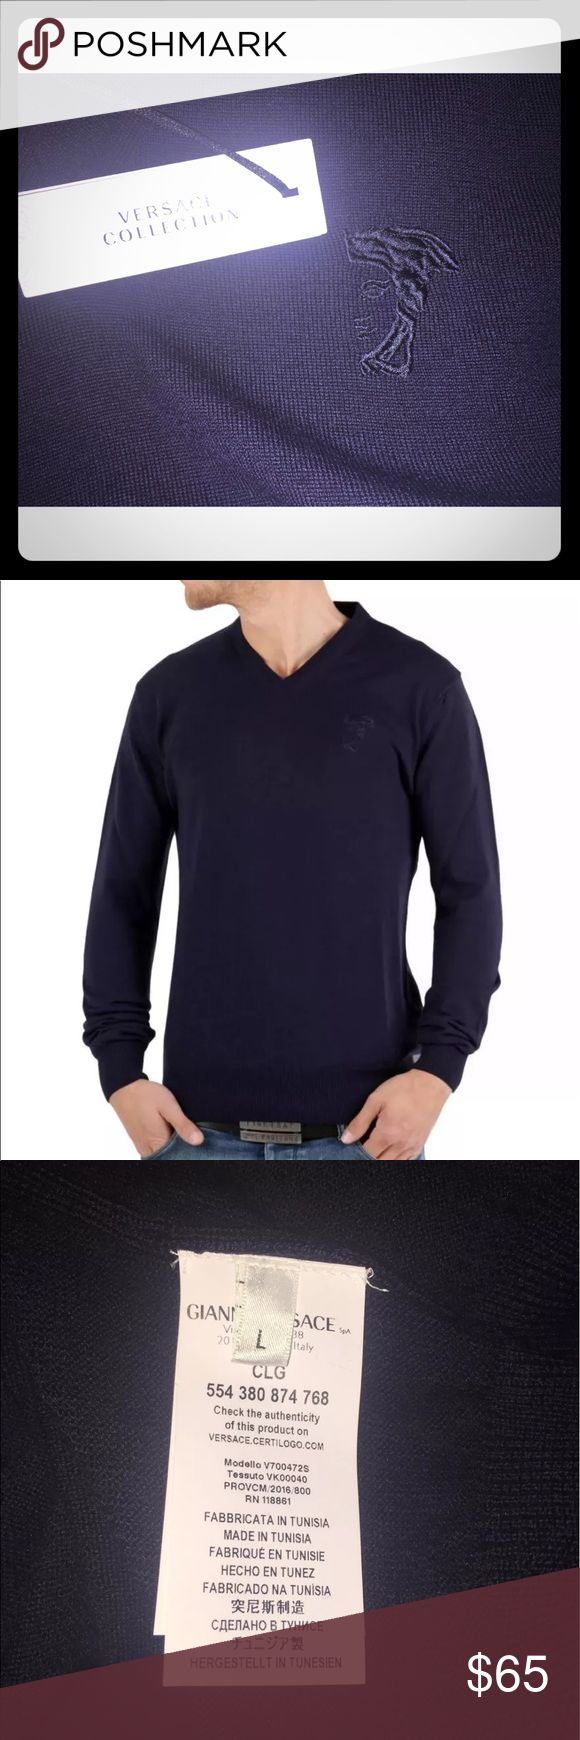 New Versace Collection V Neck Wool Sweater Versace Sweater Brand New With Tags 100% Authentic 100% Wool  Purchased this sweater from Nordstrom, on sale for $149.99.  Never wore it  Cleaning out my closet so everything has to go Versace Sweaters V-Neck